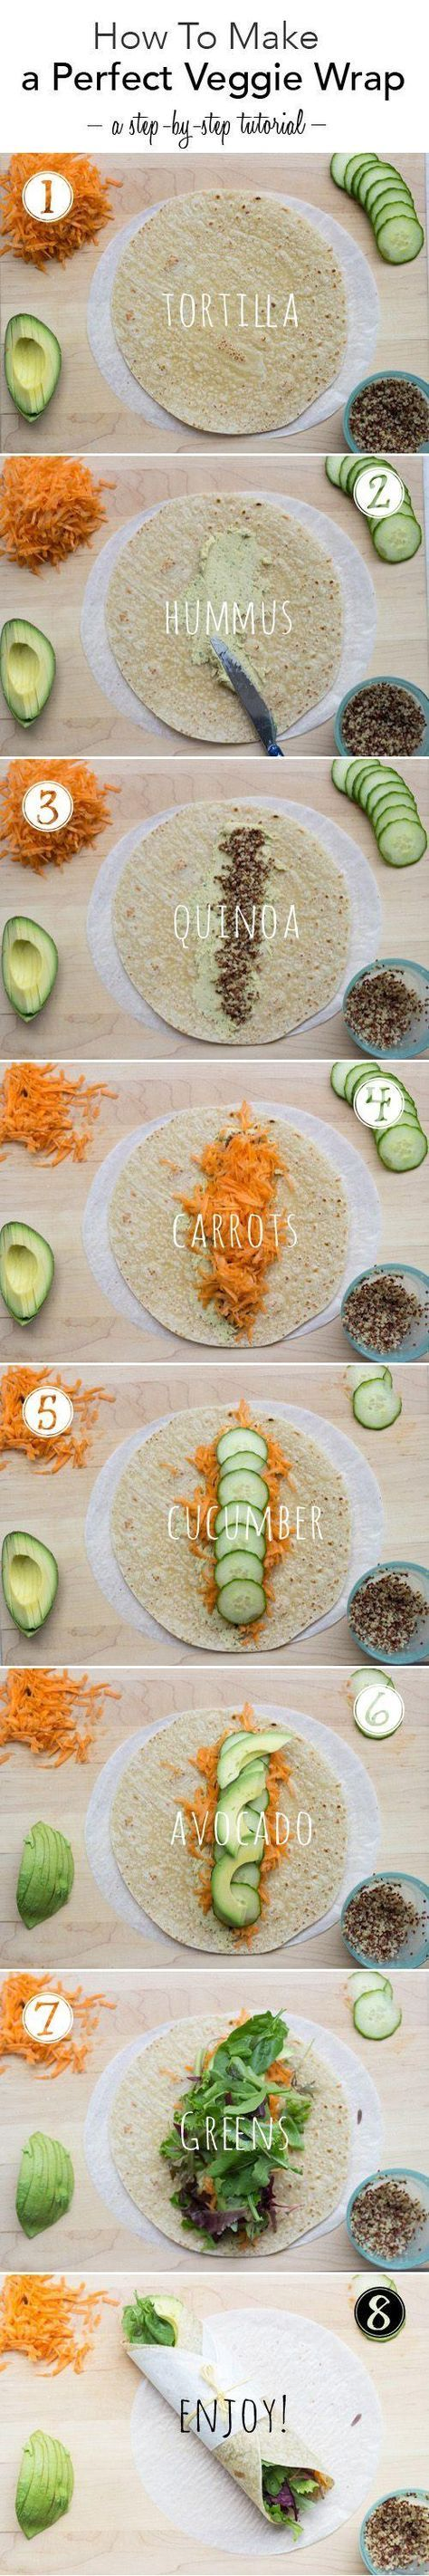 yummy! I didn't have carrots, and I added shredded chicken, but turned out incredible!